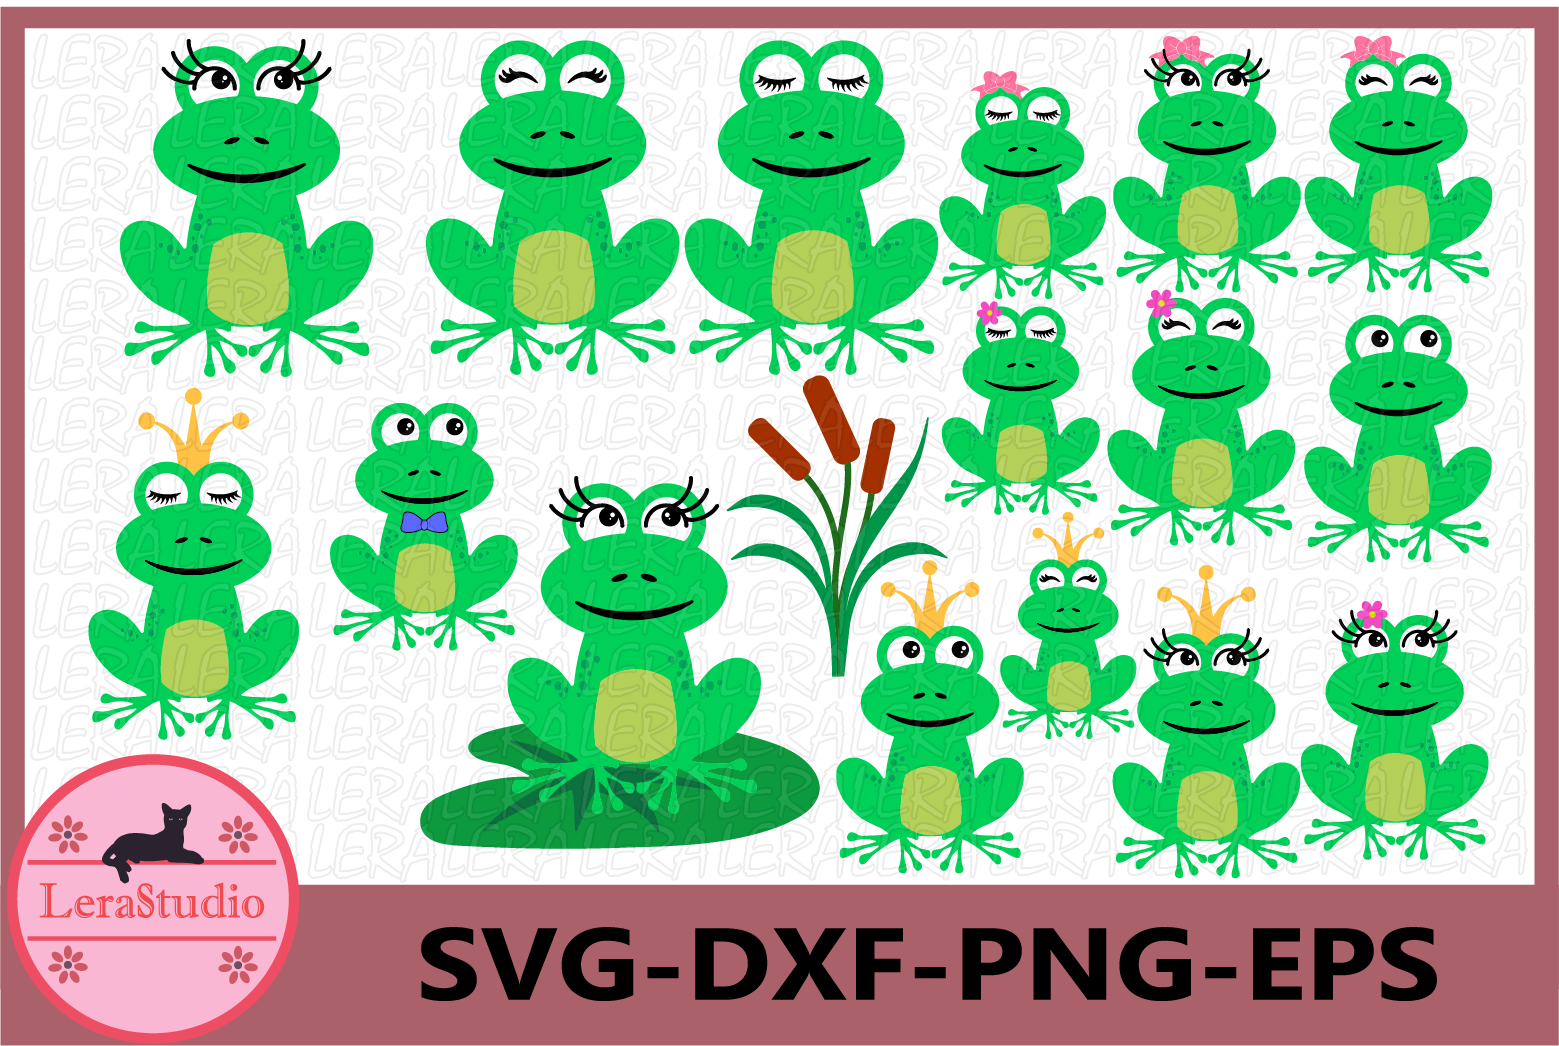 Frog SVG, Frog Prince svg, Frog Eyelashes Svg, Frog with Bow example image 1